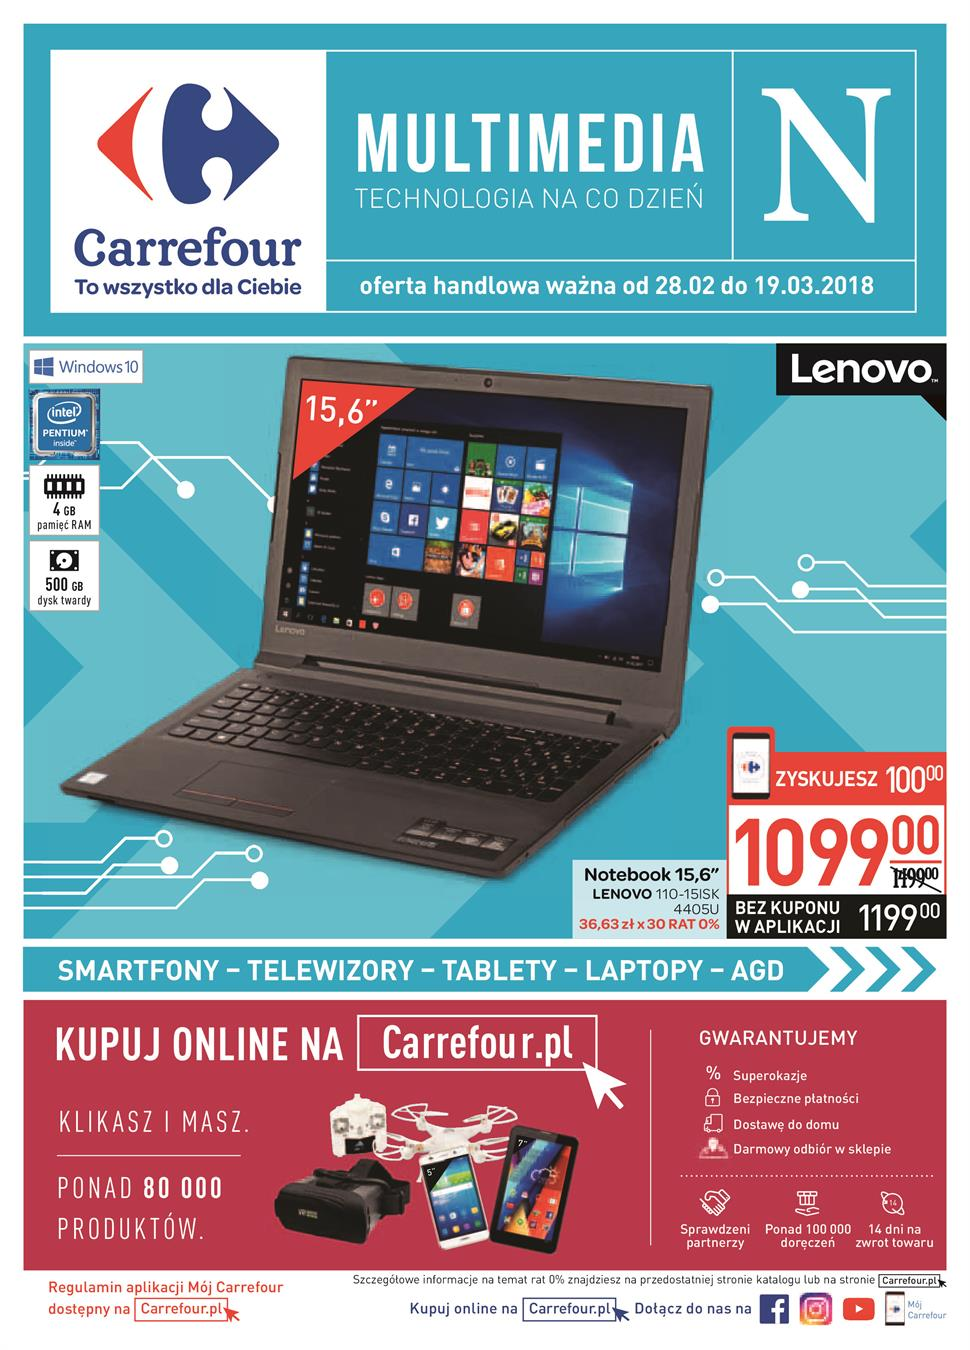 Gazetka Carrefour Polska Sp. z o.o. nr 0 od 2018-02-28 do 2018-03-19